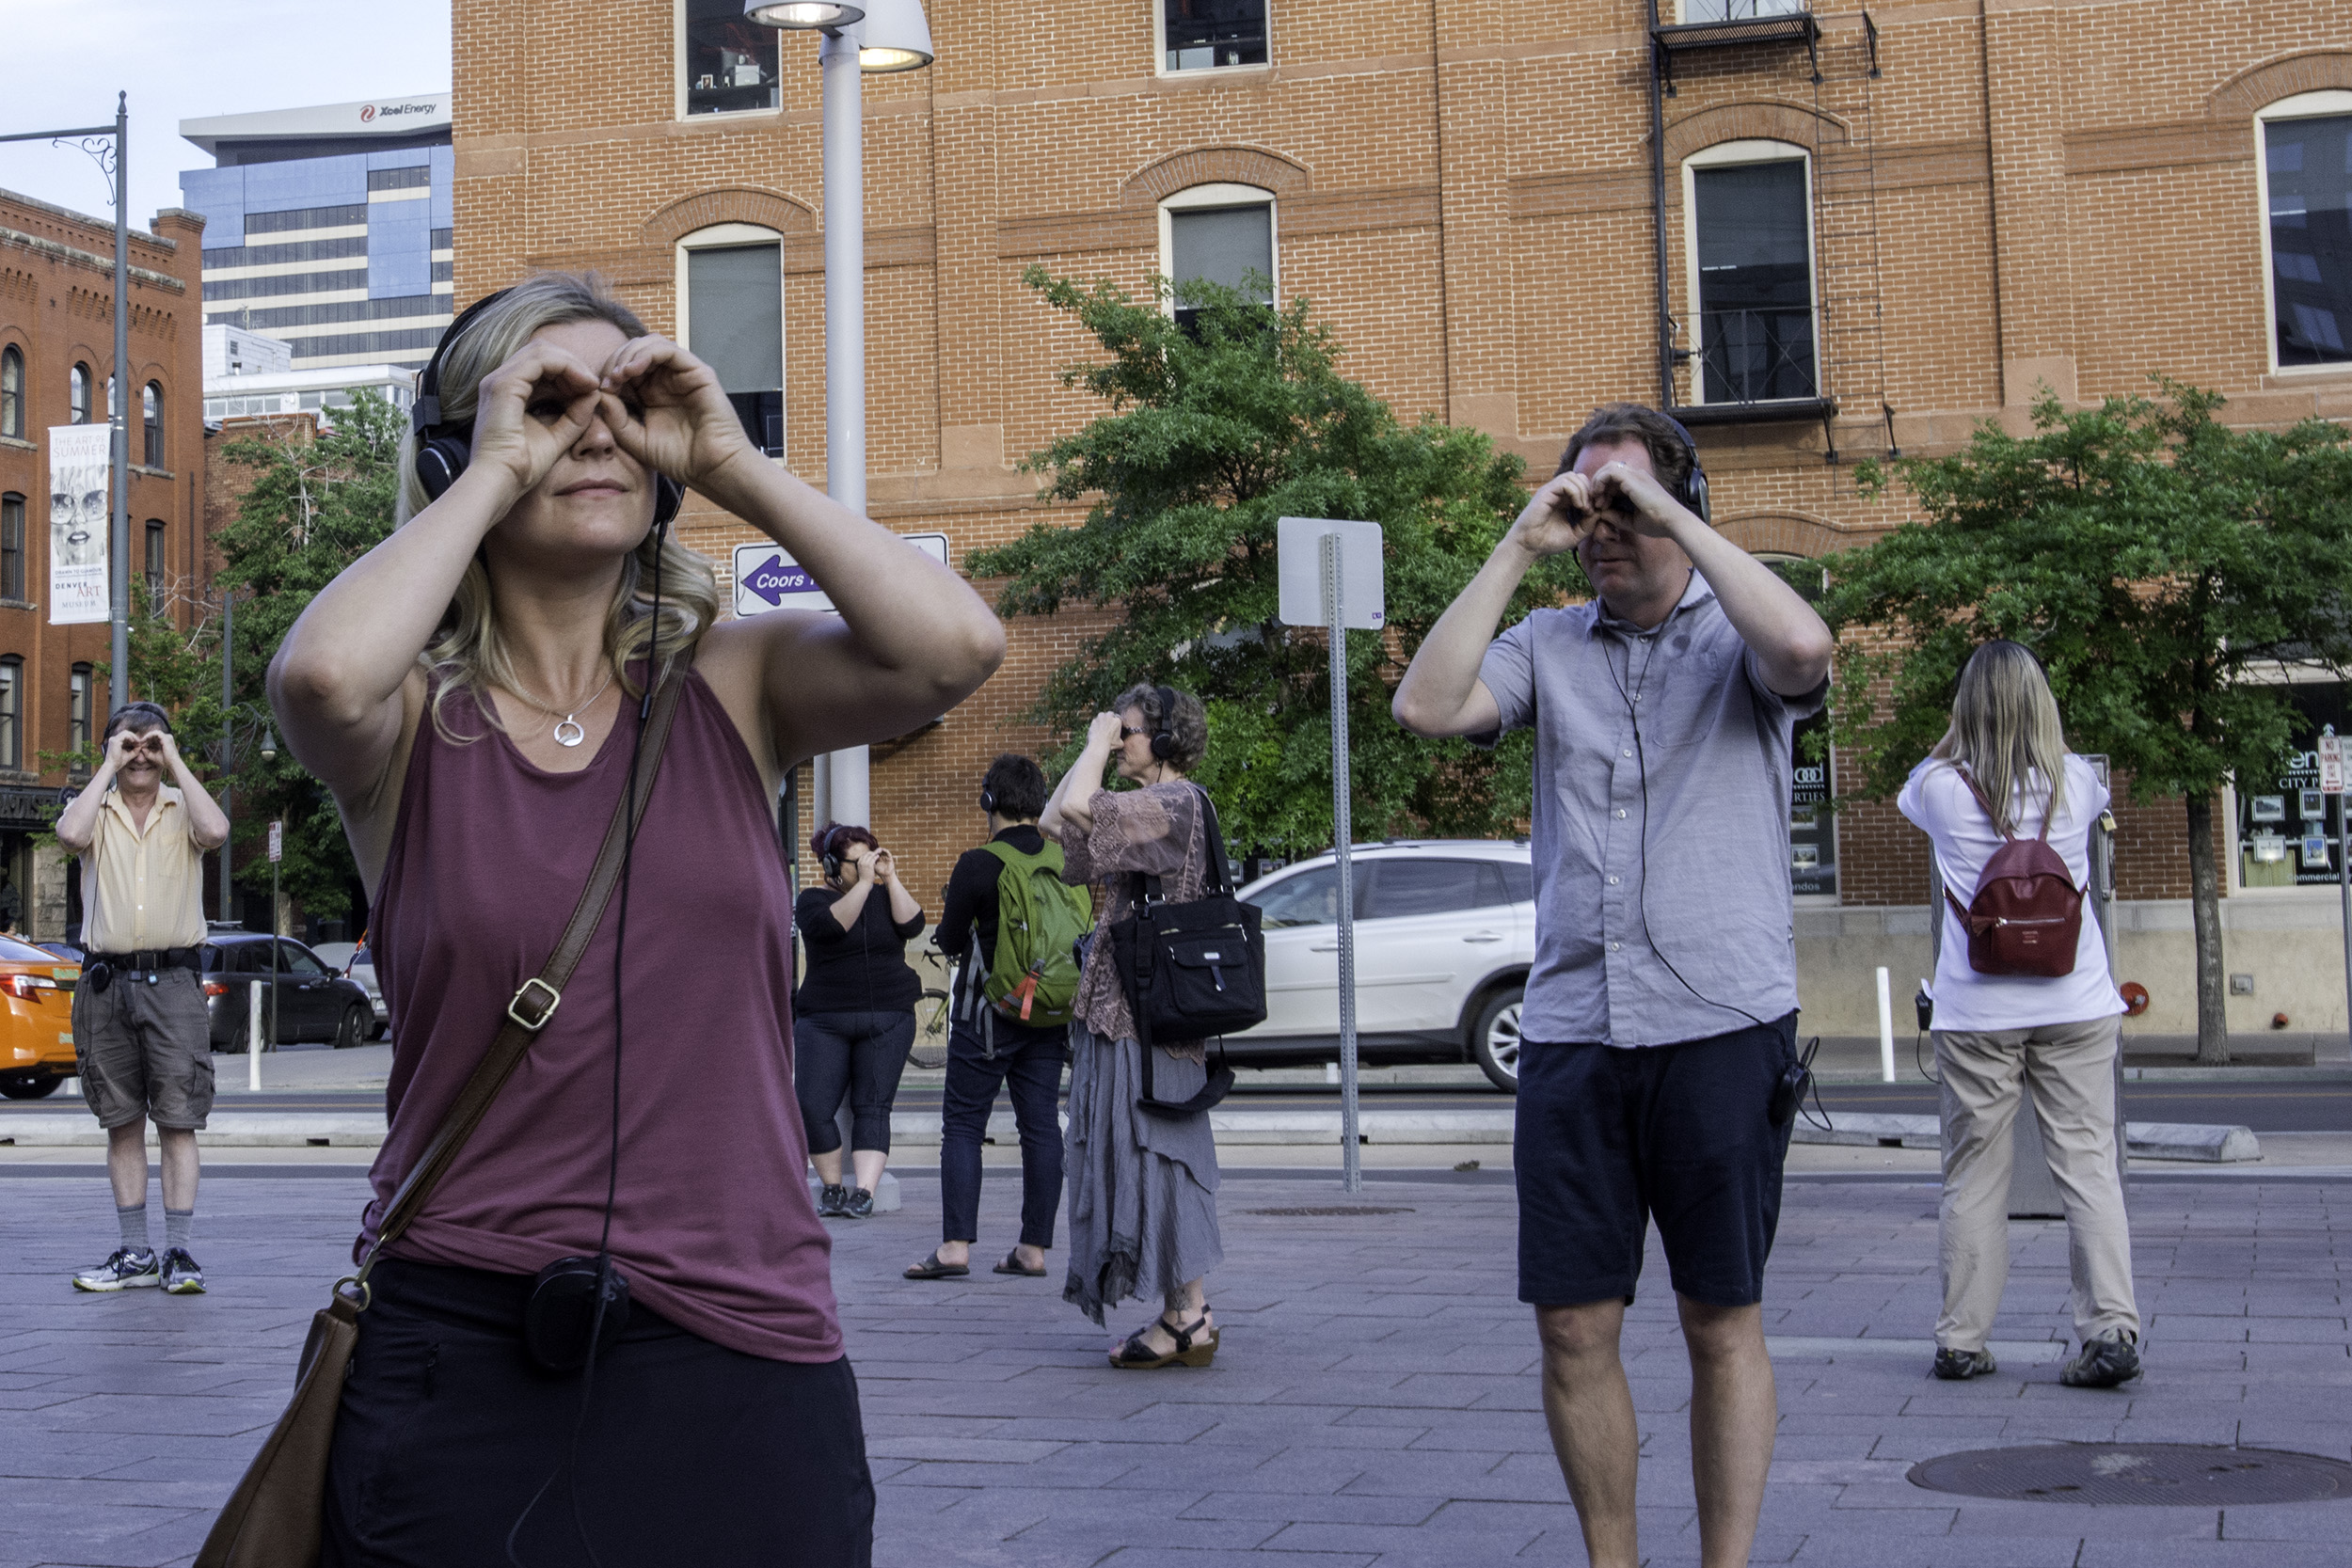 "<p>""Remote Denver"" participants use their hands to mimic binoculars while touring outside Denver's Union Station on Tuesday, June 12, 2018. </p>"